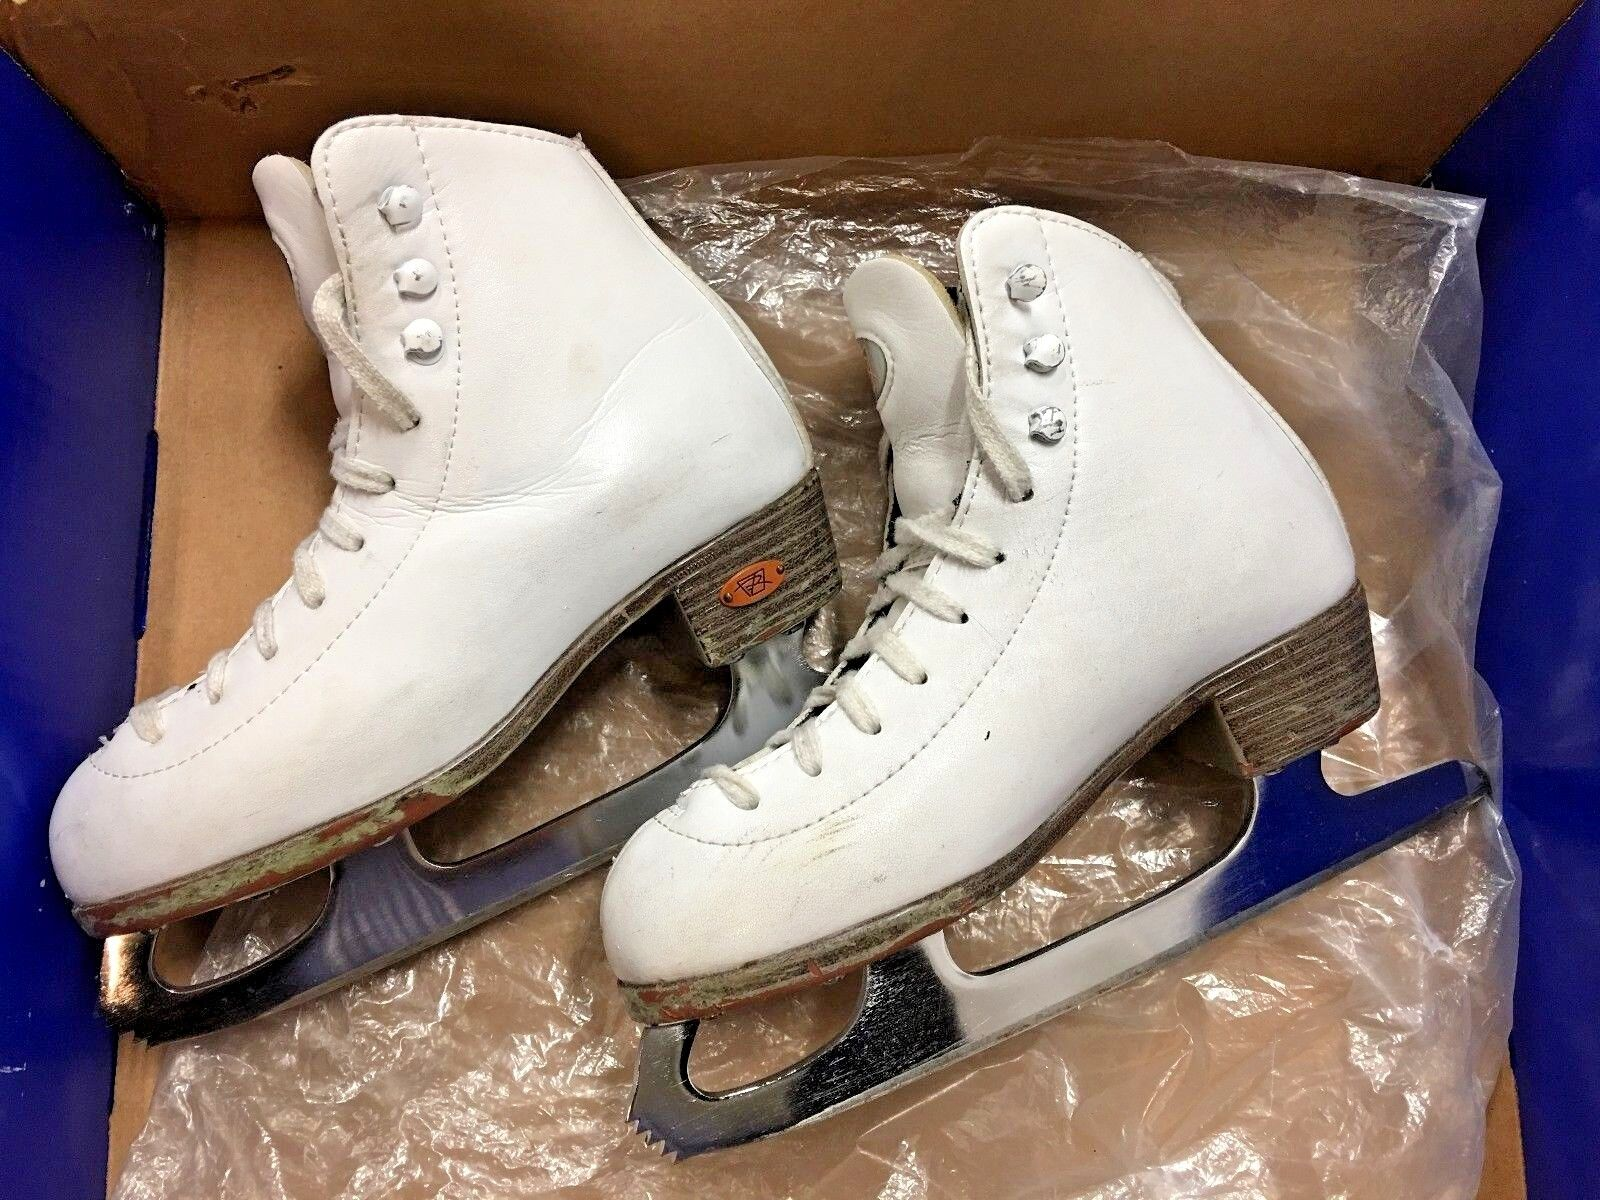 Riedell 133 DM Size 2 Girls Ice Skating shoes Used for 1 year.